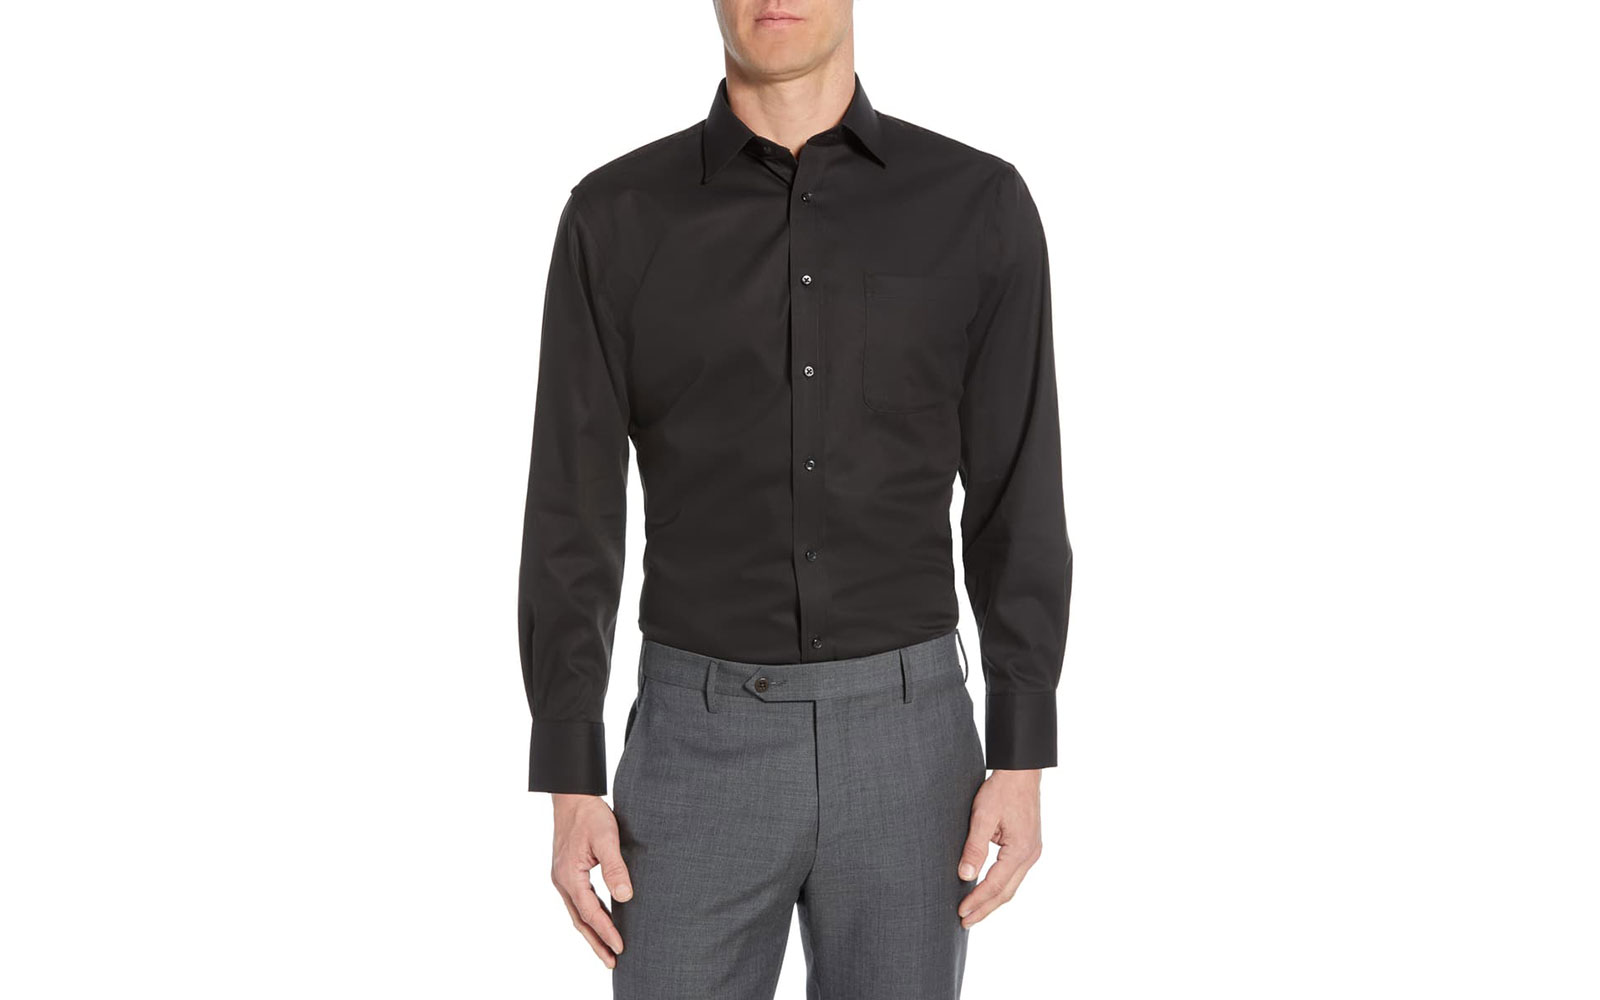 Nordstrom's Traditional Fit Non-Iron Dress Shirt